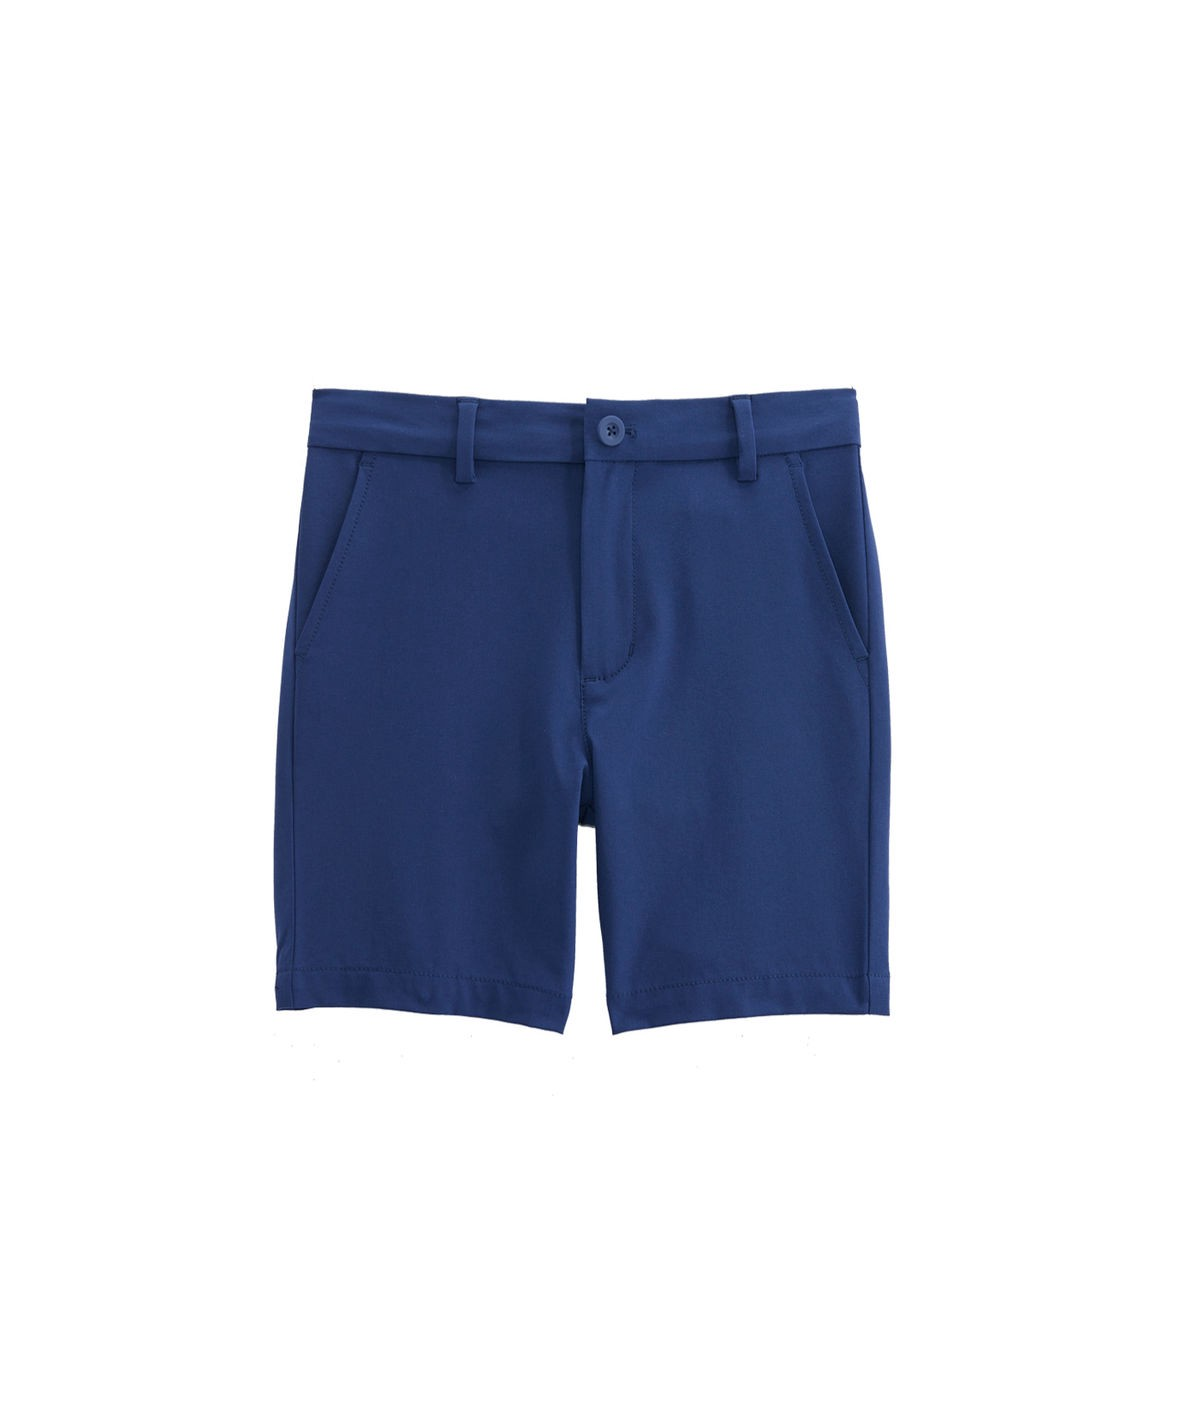 9296c1e983 Vineyard Vines Boys New Performance Breaker Shorts - Capri Blue 16